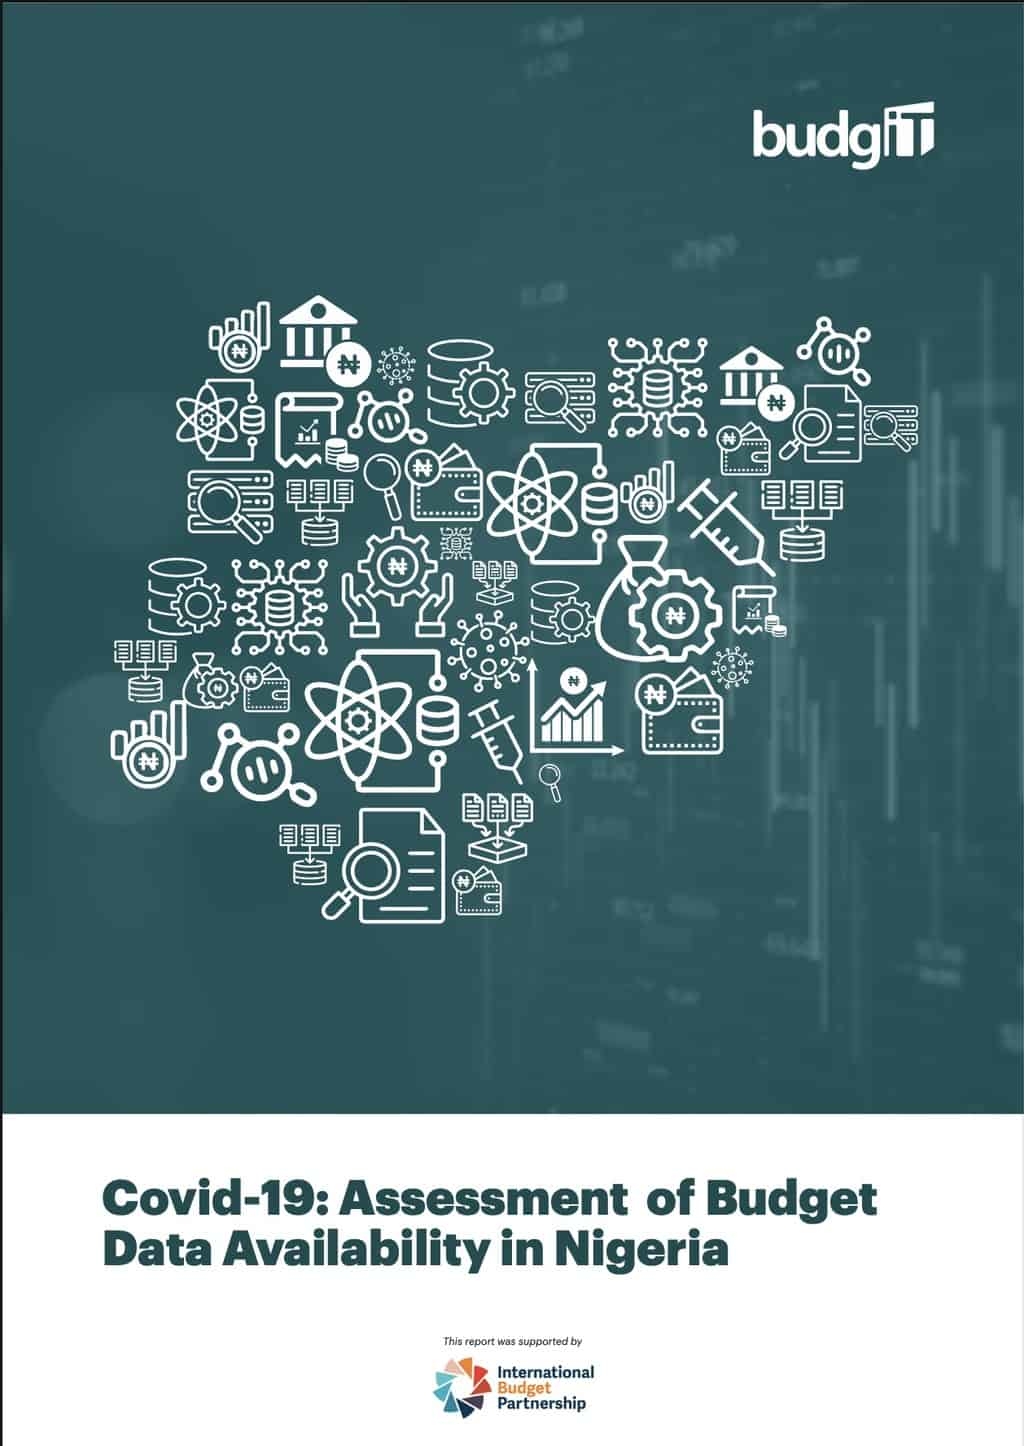 COVID-19: Assessment of Budget Data Availability in Nigeria